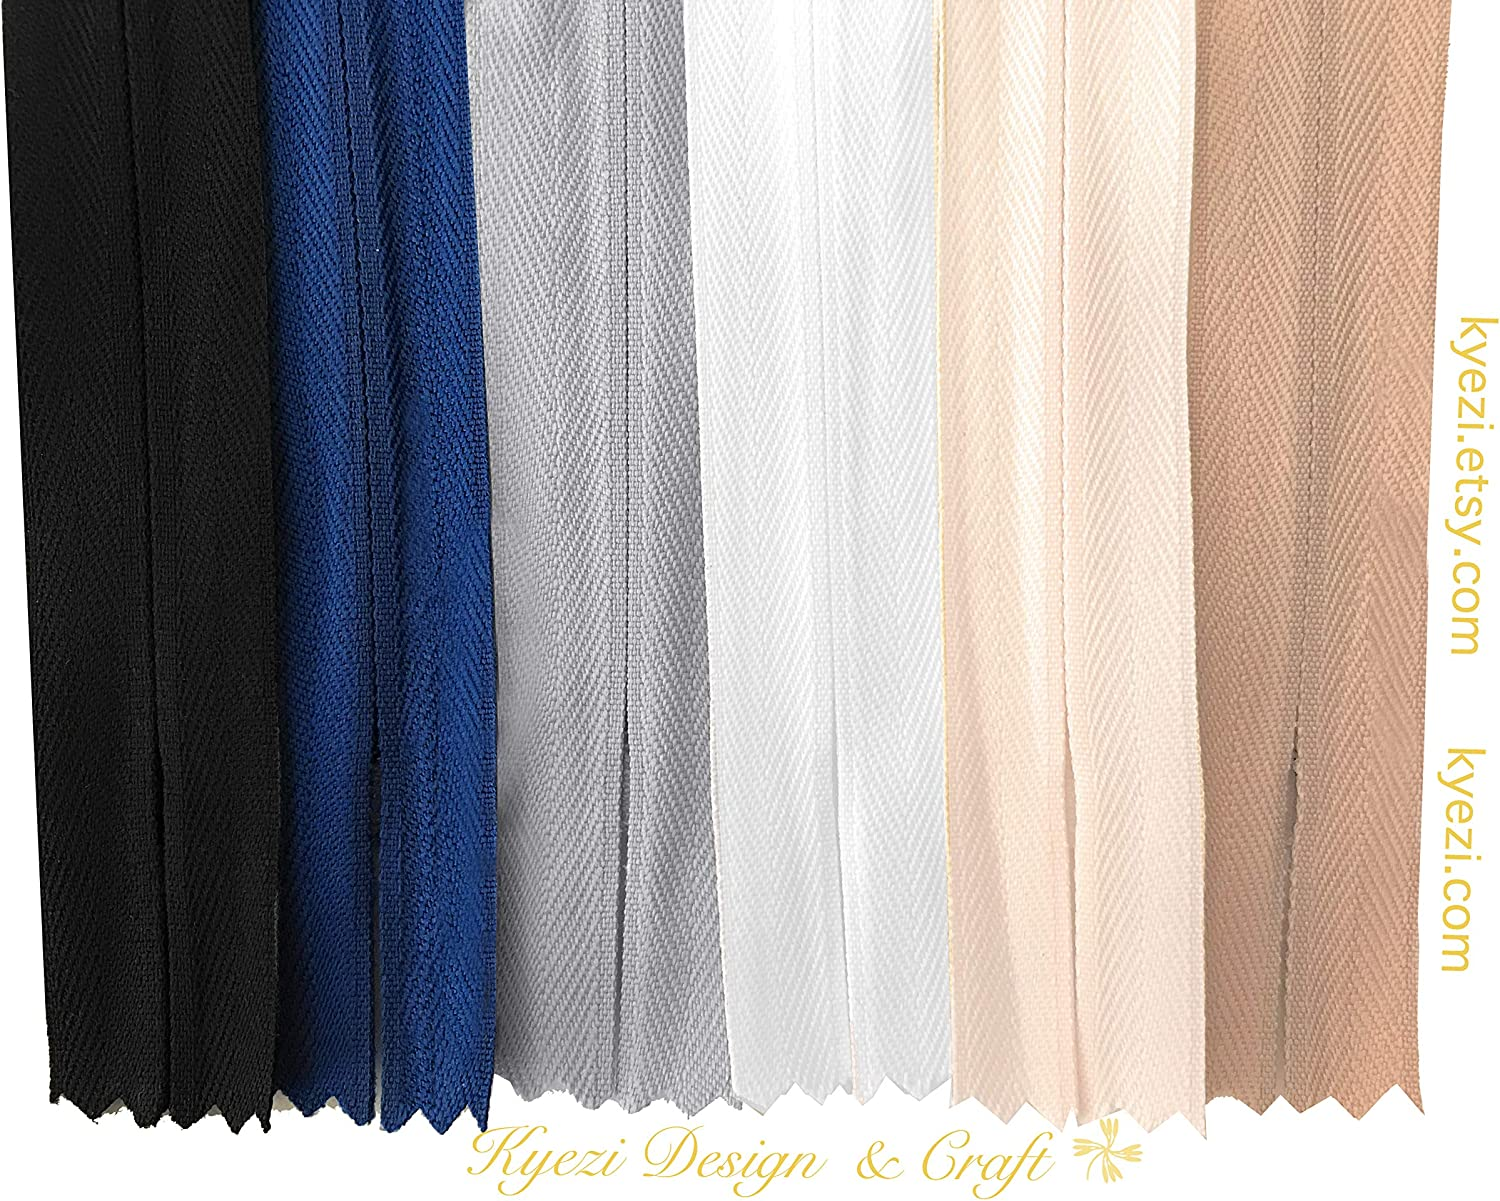 White, 5pcs, 18 inch Sewer Skirts Pants Tailor 18 Inch Nylon Invisible Zippers for Pillow Sewing Craft Dresses